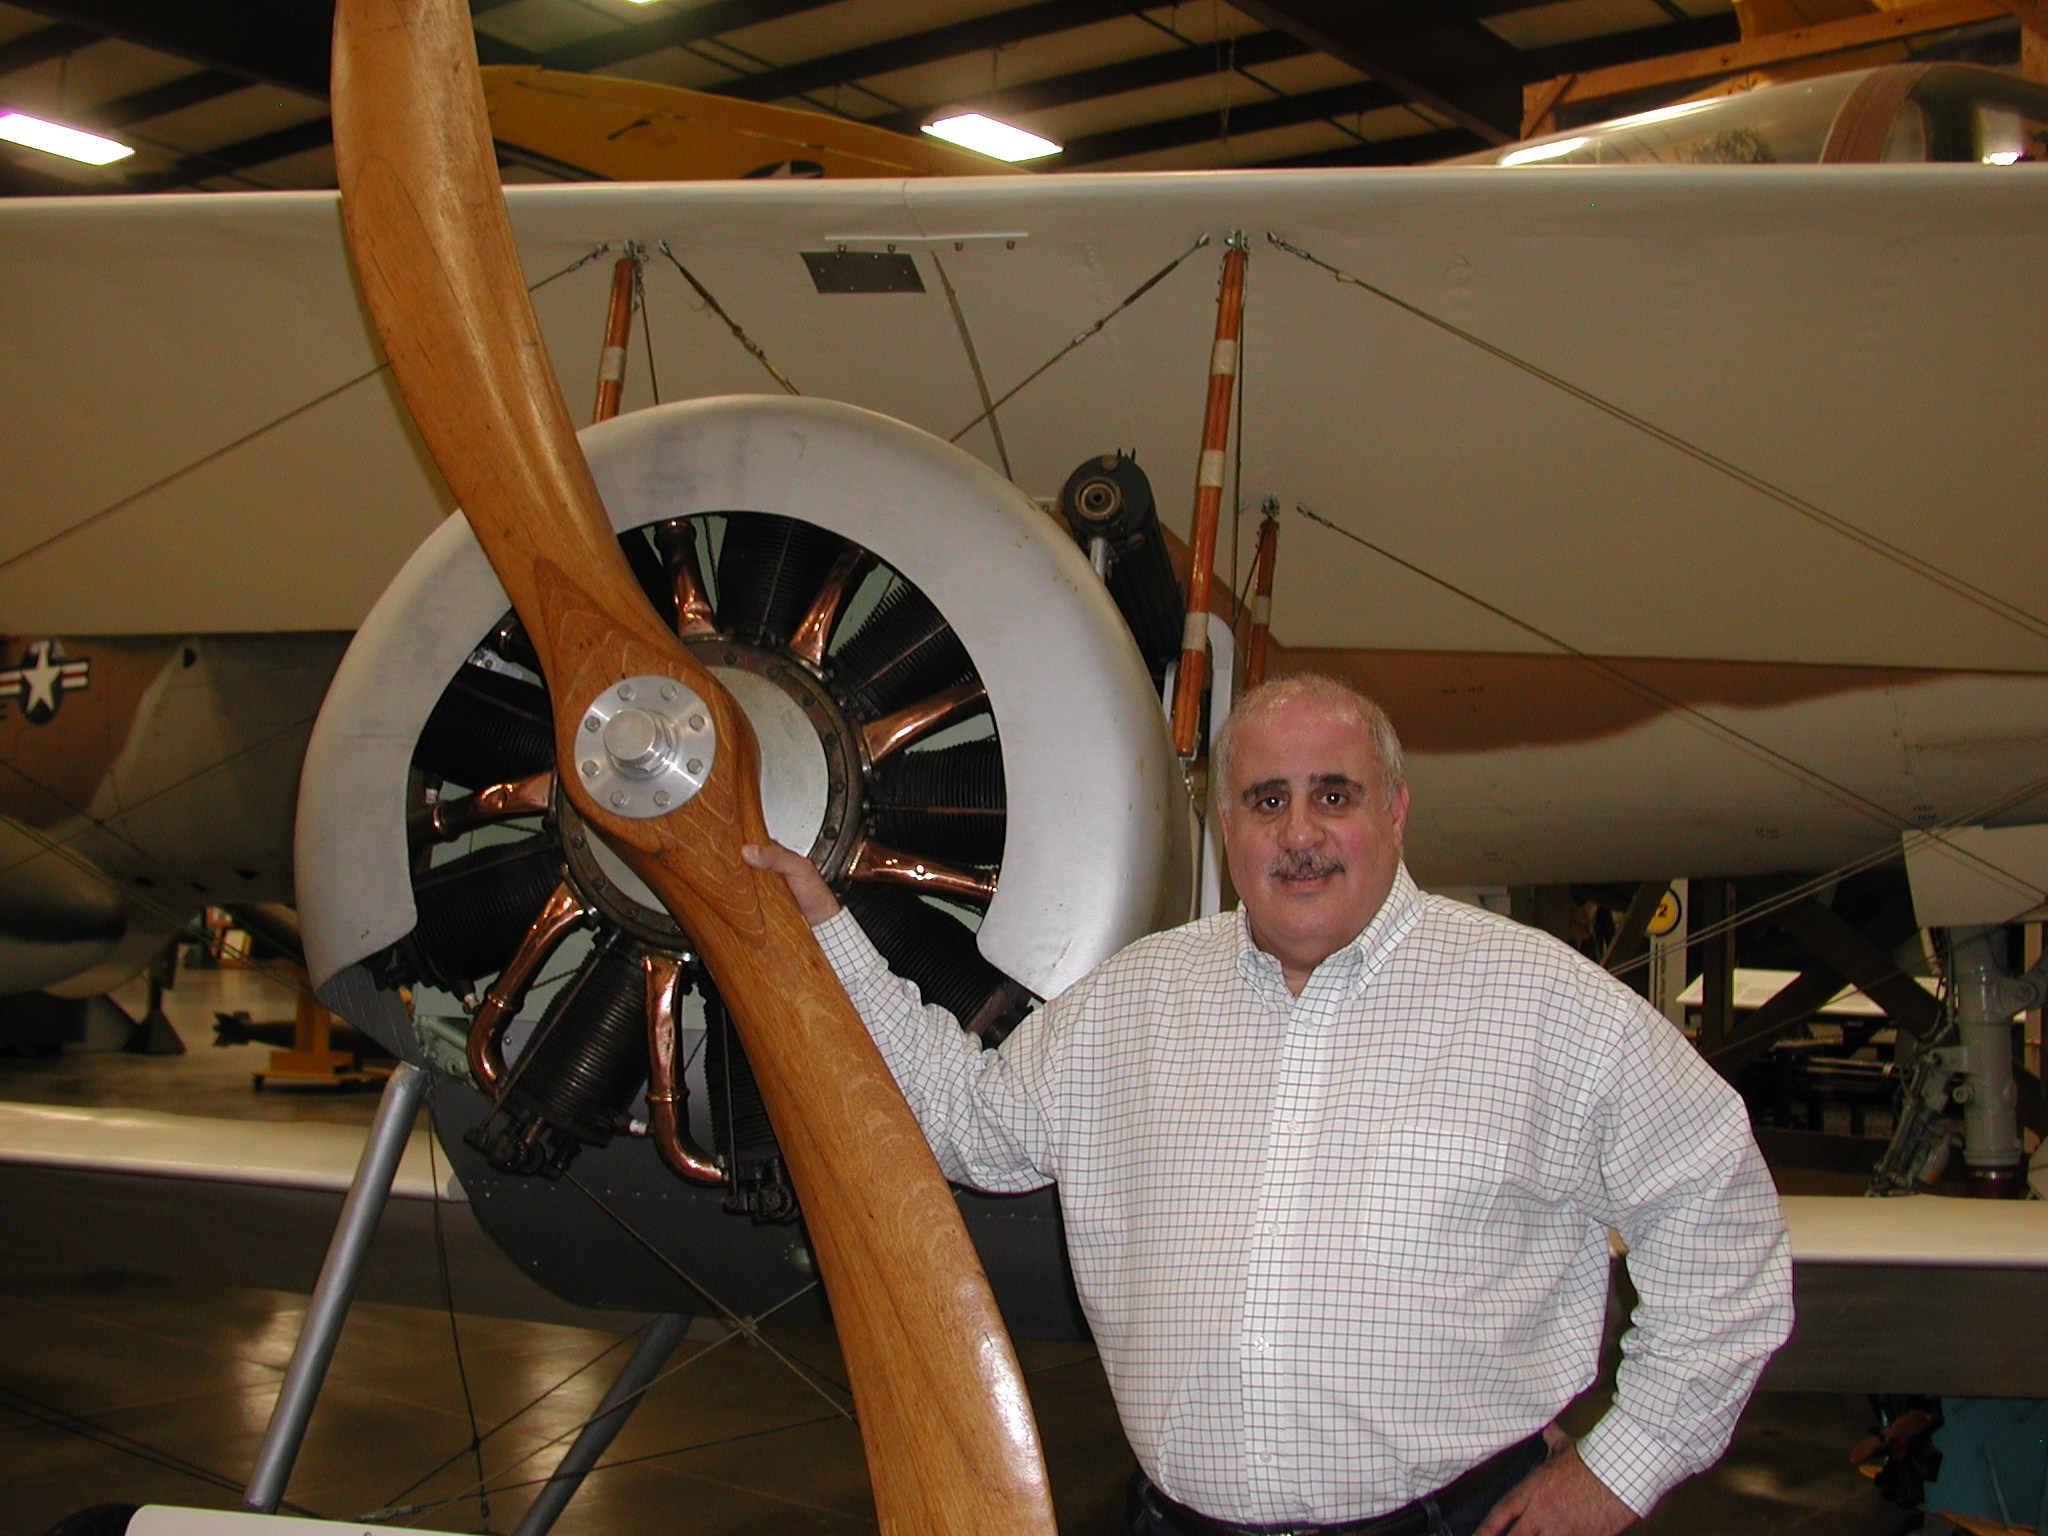 Michael P. Speciale, Executive Director of the New England Air Museum (NEAM)